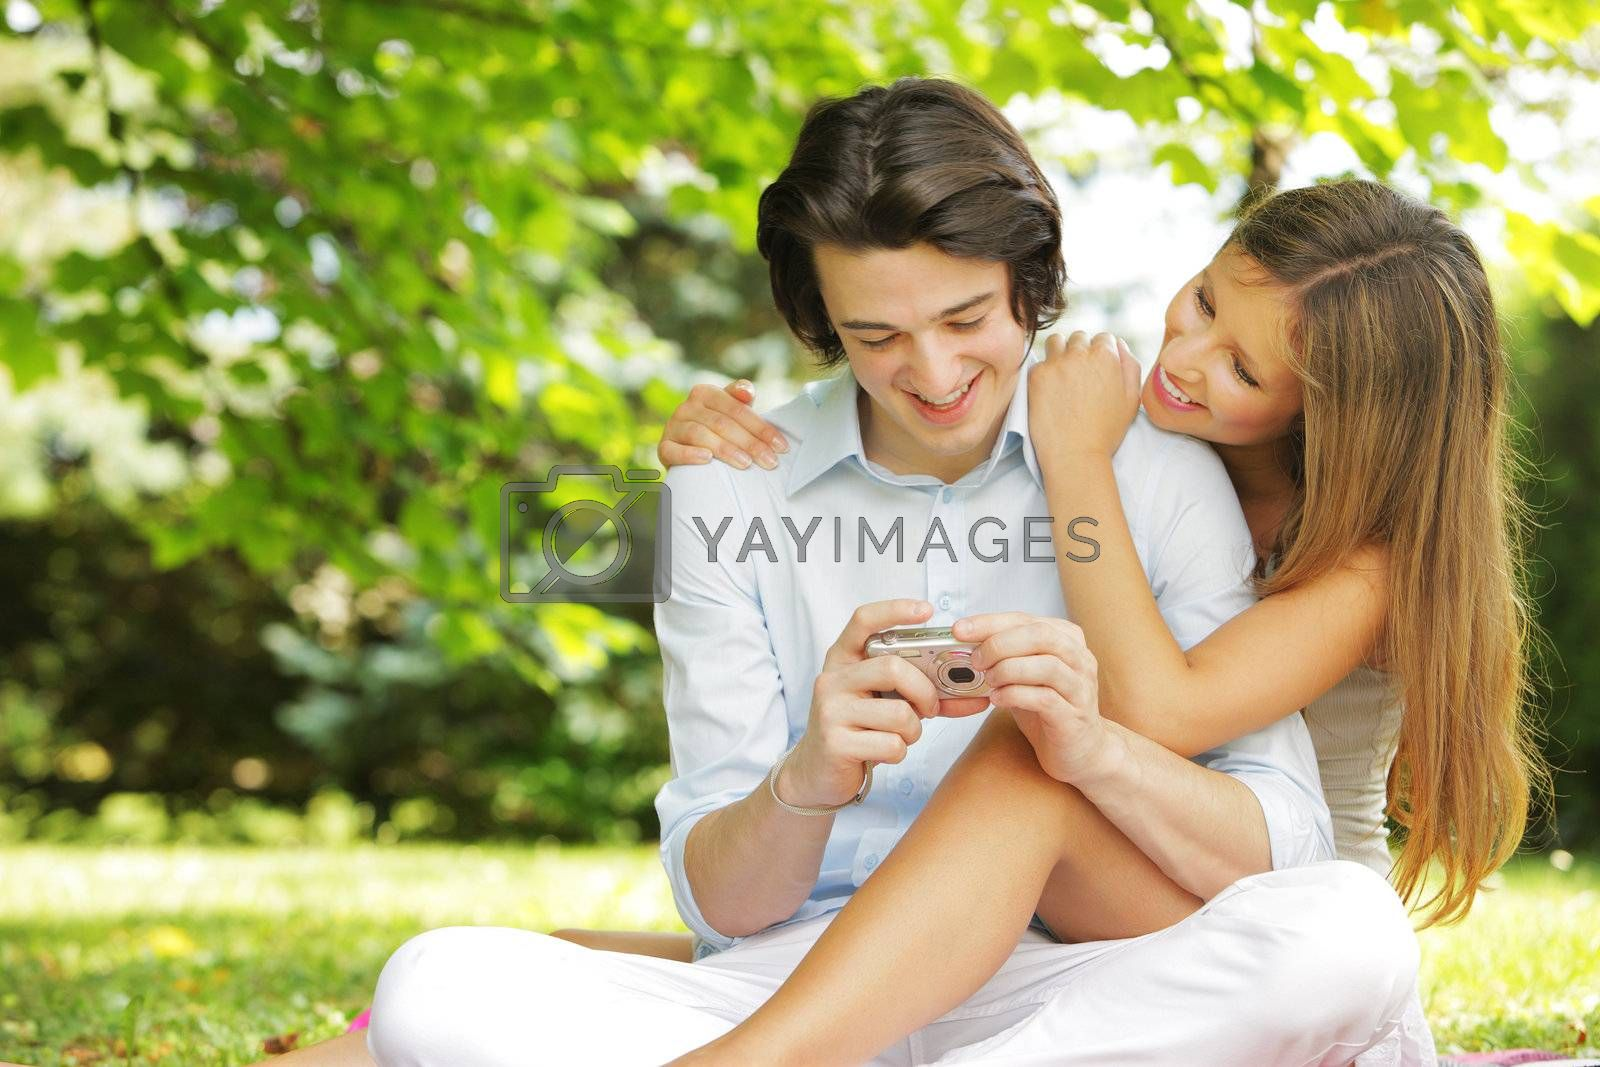 a couple of lovers, view photos on the display of their compact camera